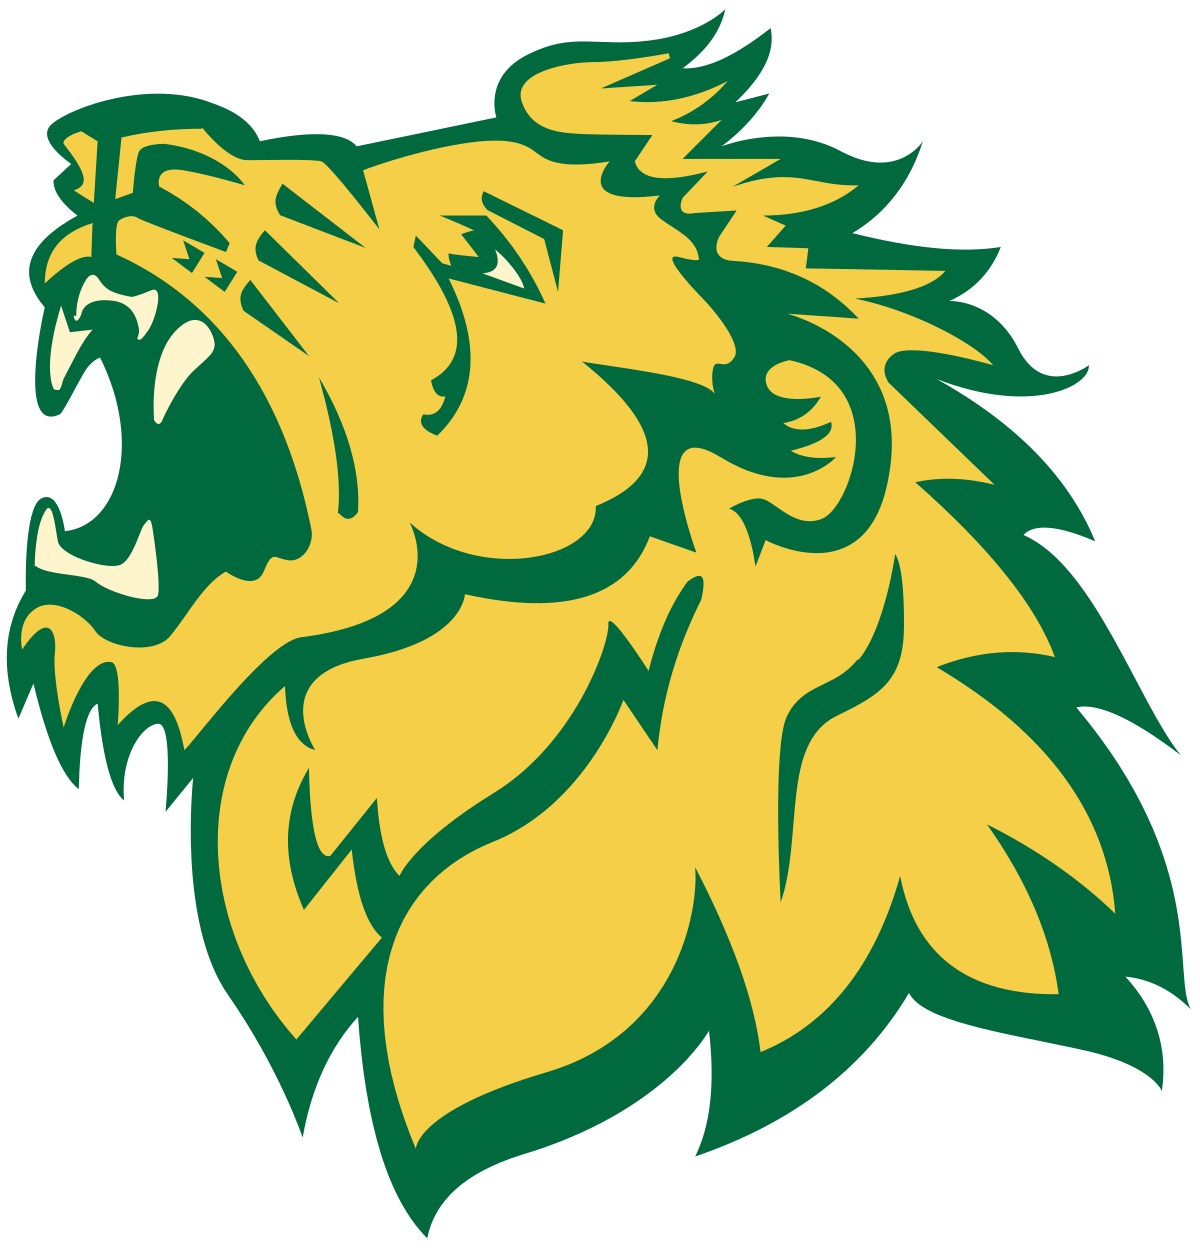 Mule basketball mascot clipart graphic free download Missouri Southern Lions - Wikipedia graphic free download